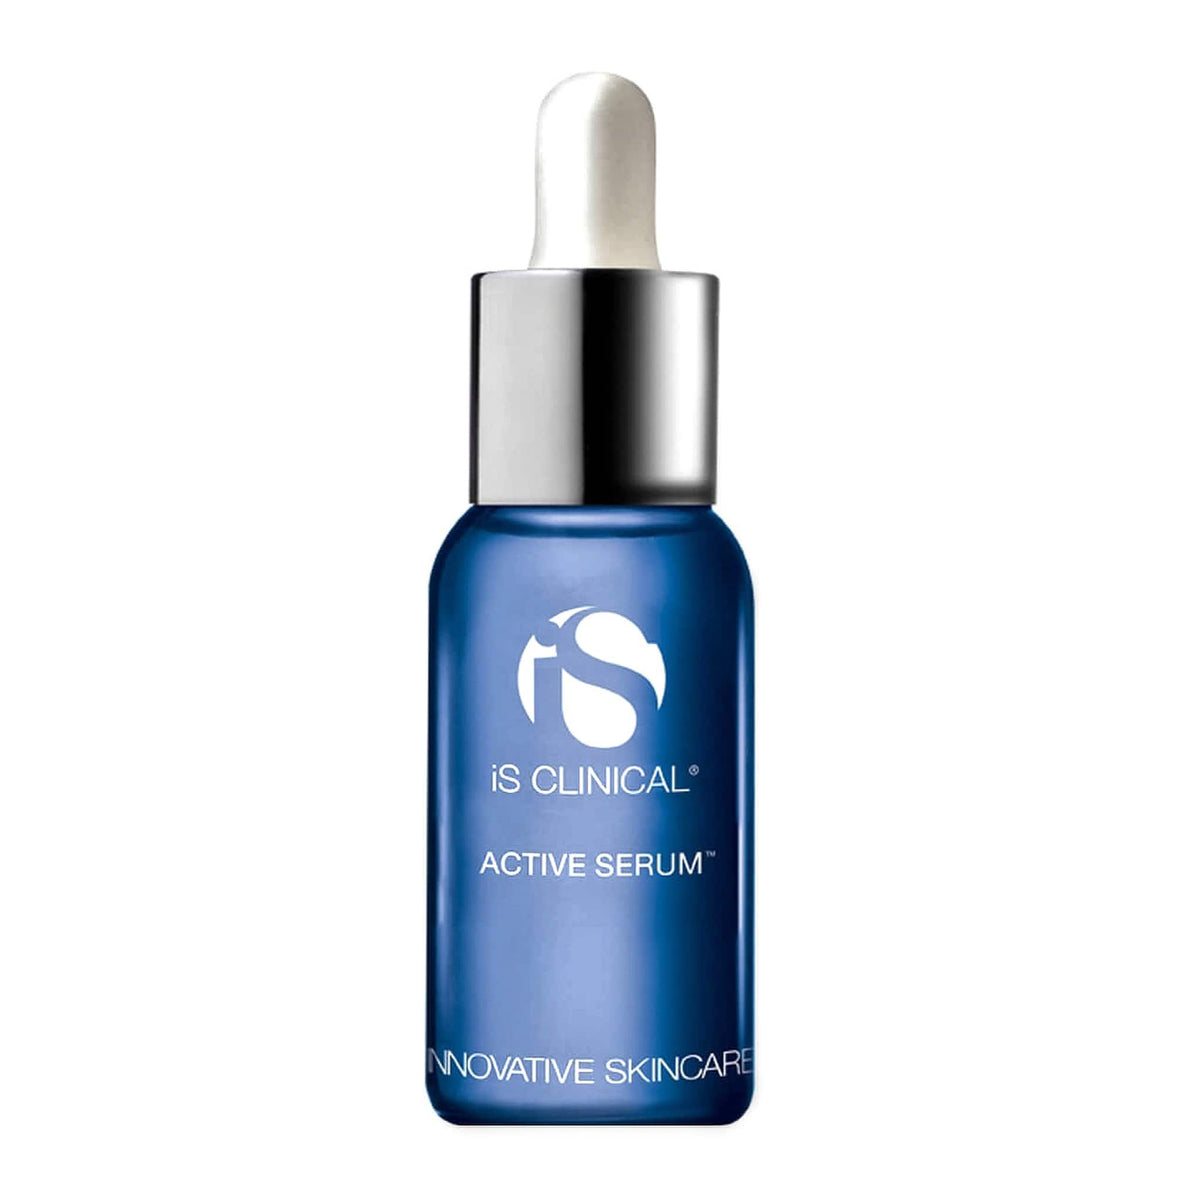 IS CLINICAL - ACTIVE SERUM - Beauty Nook